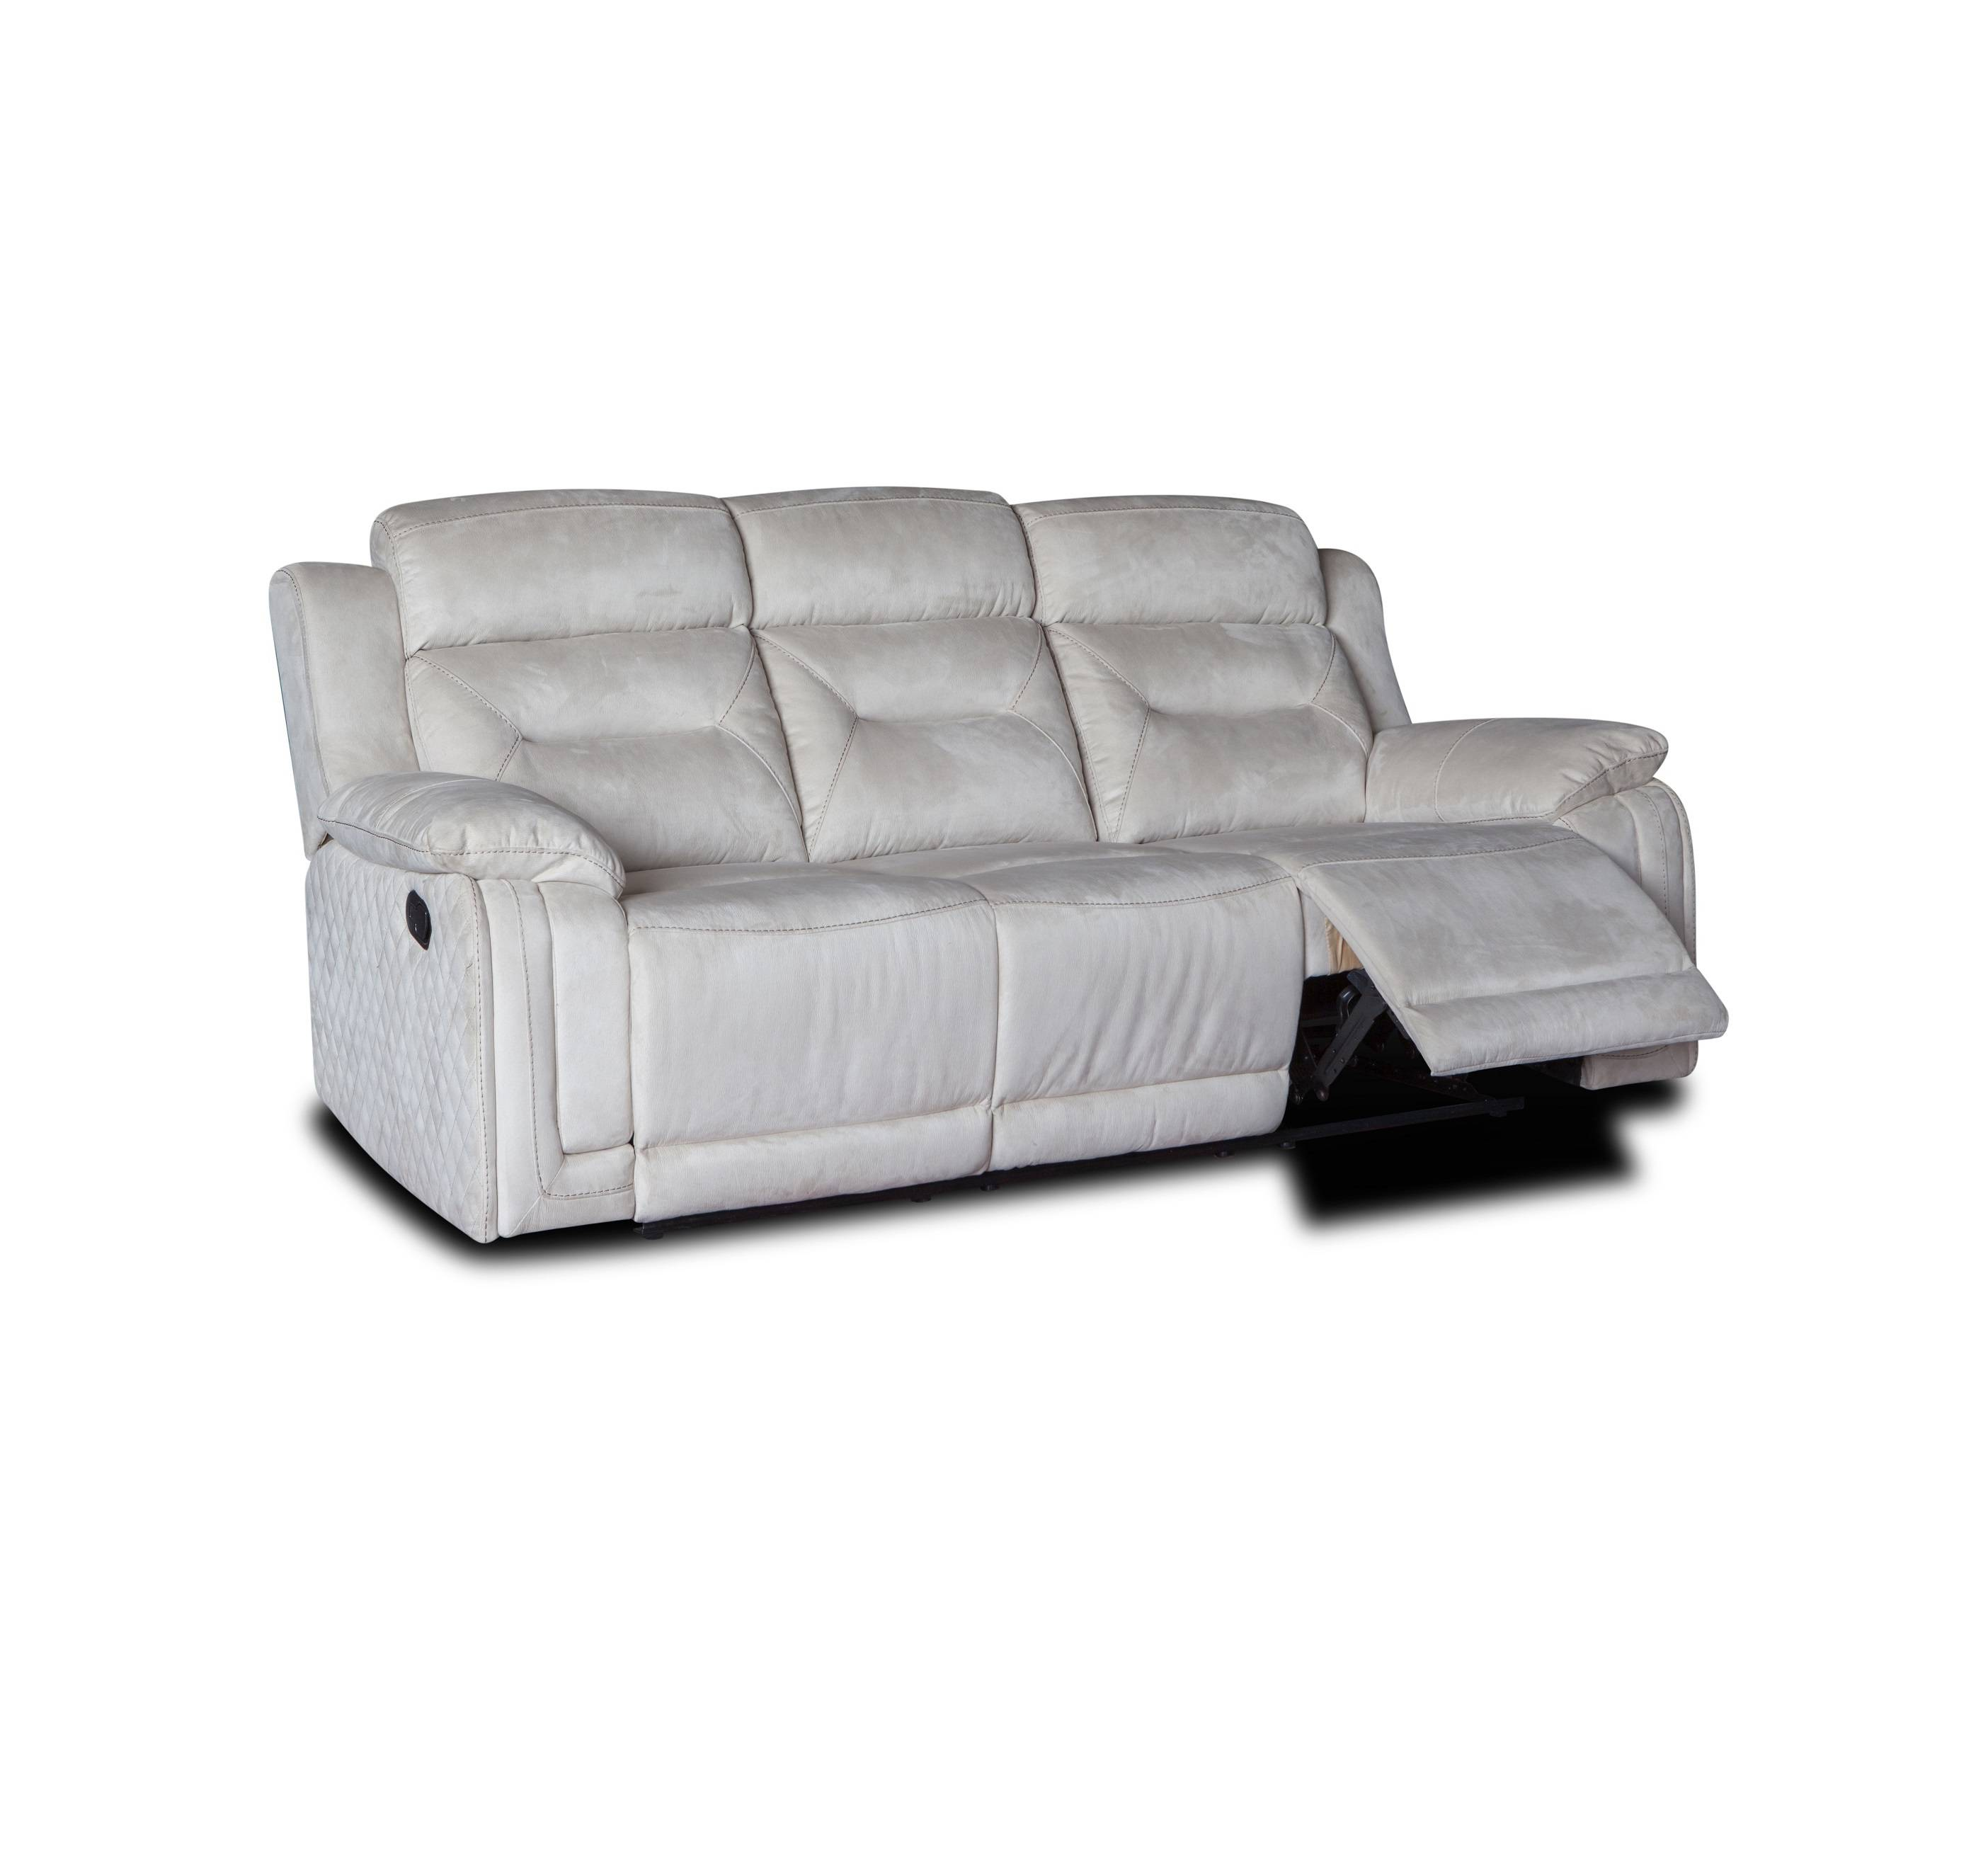 Living room leather zero gravity furniture recliner sofa